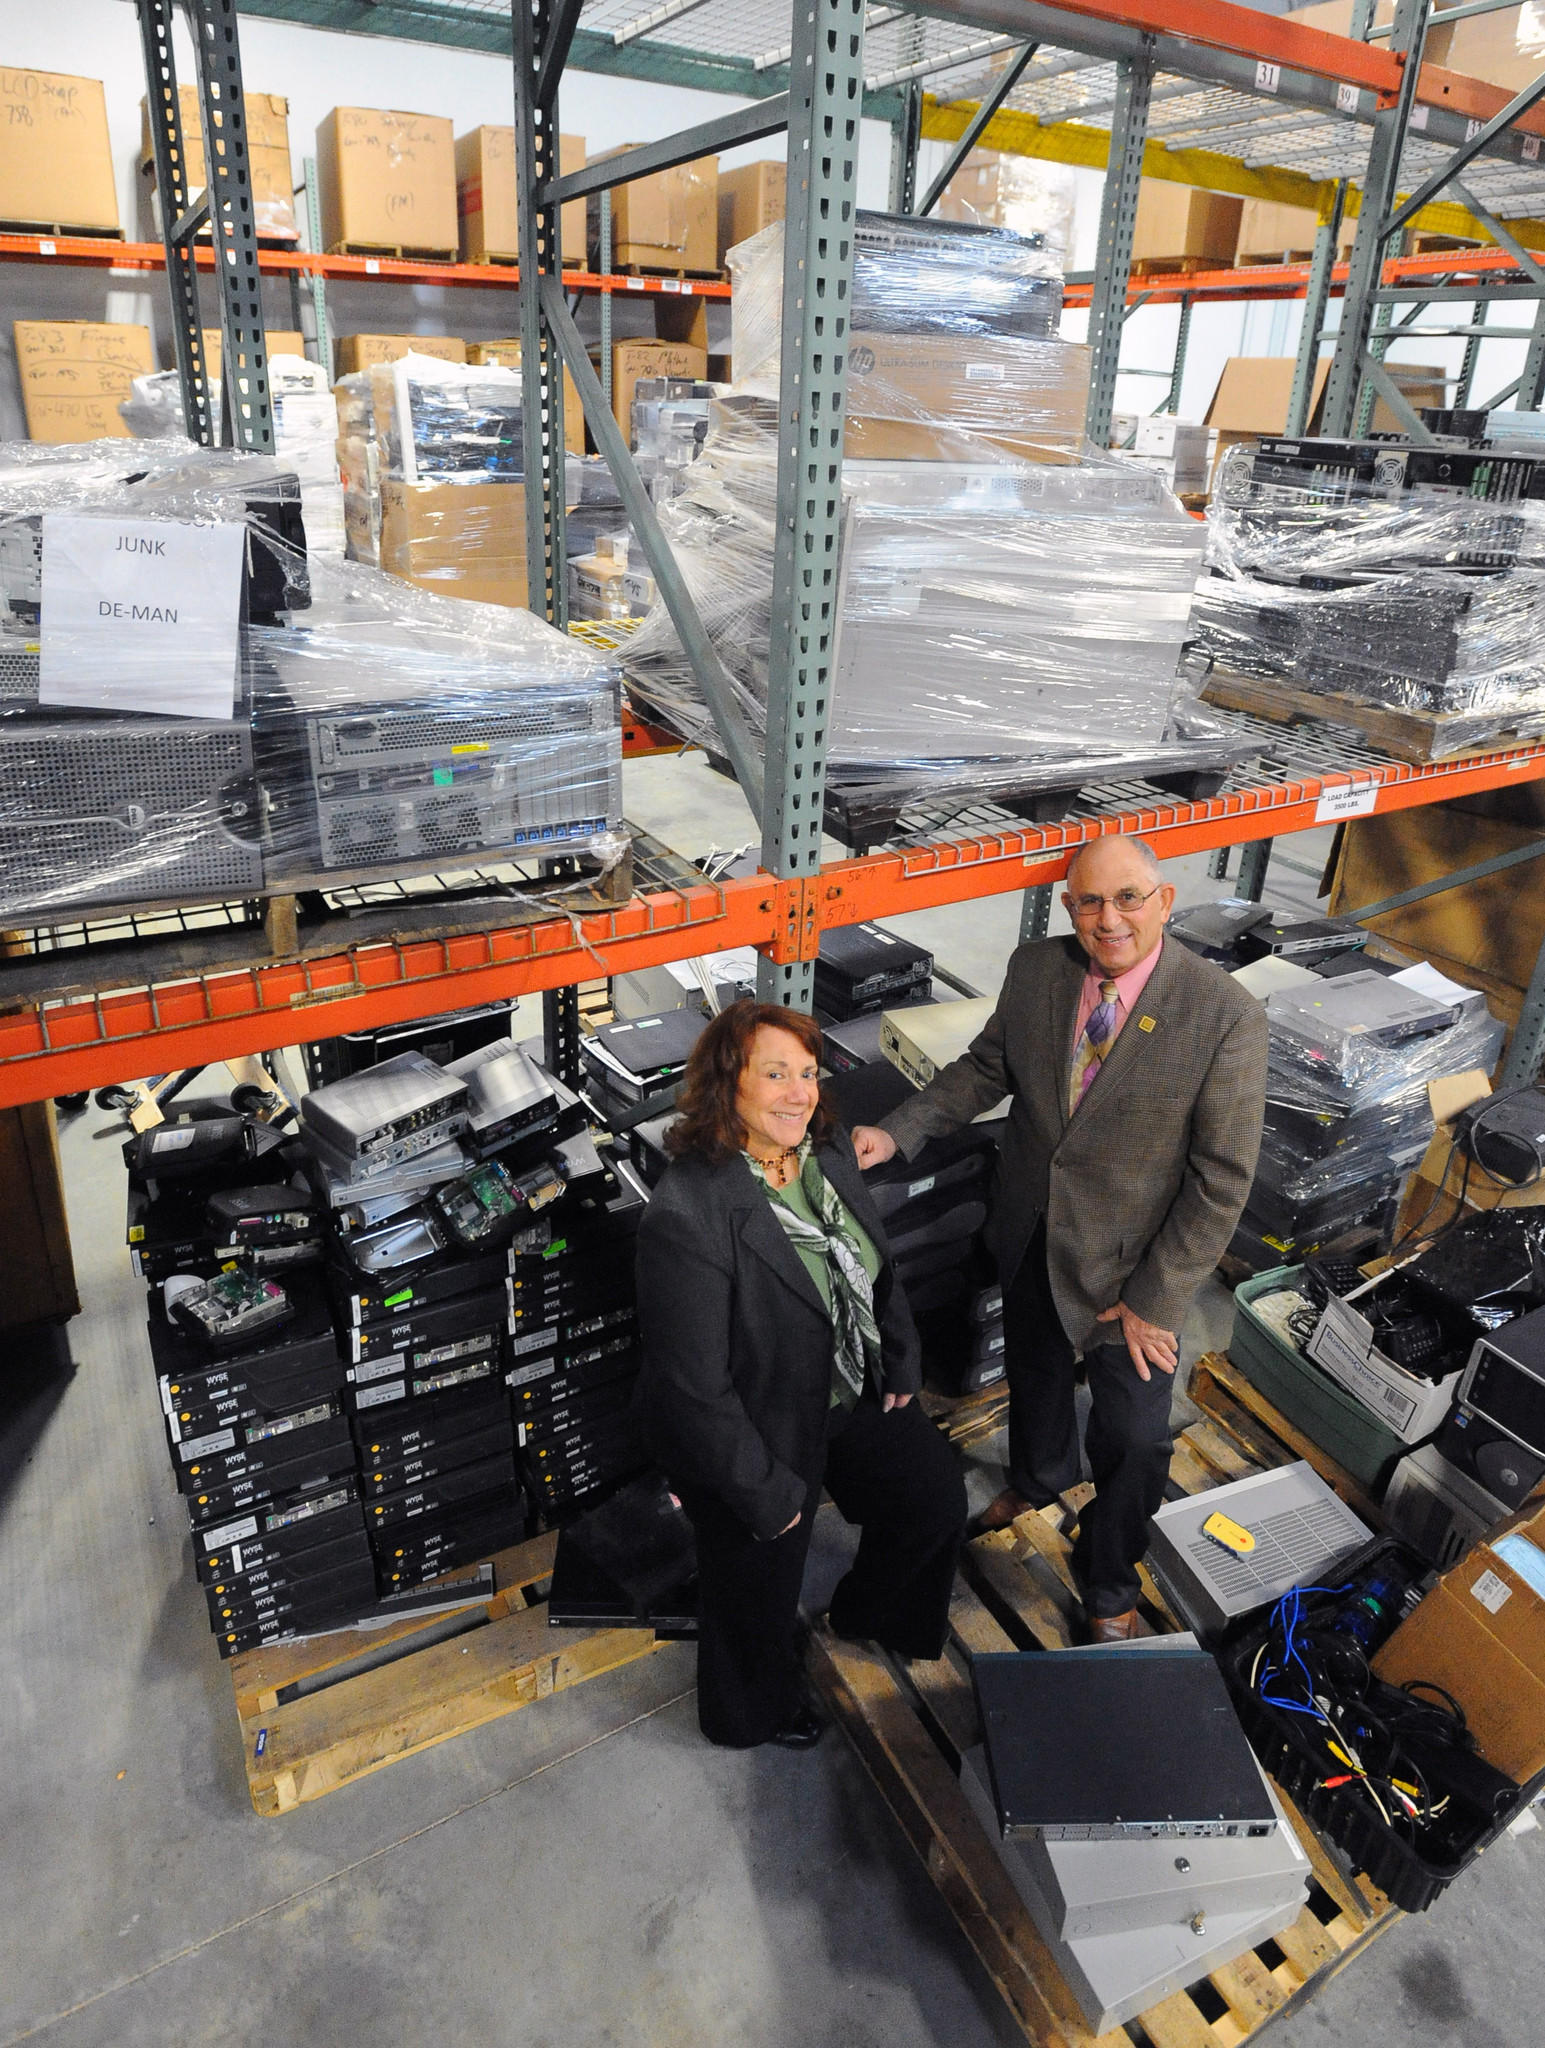 CEO Arleen Chafitz, left, and husband Steve Chafitz, president, run e-End, which specializes in the secure sanitization of electronic media and data residing on end of life equipment no longer used by government agencies, contractors services or businesses. The couple is pictured in the company's warehouse filled with degaussed computer electronics that could be recycled.